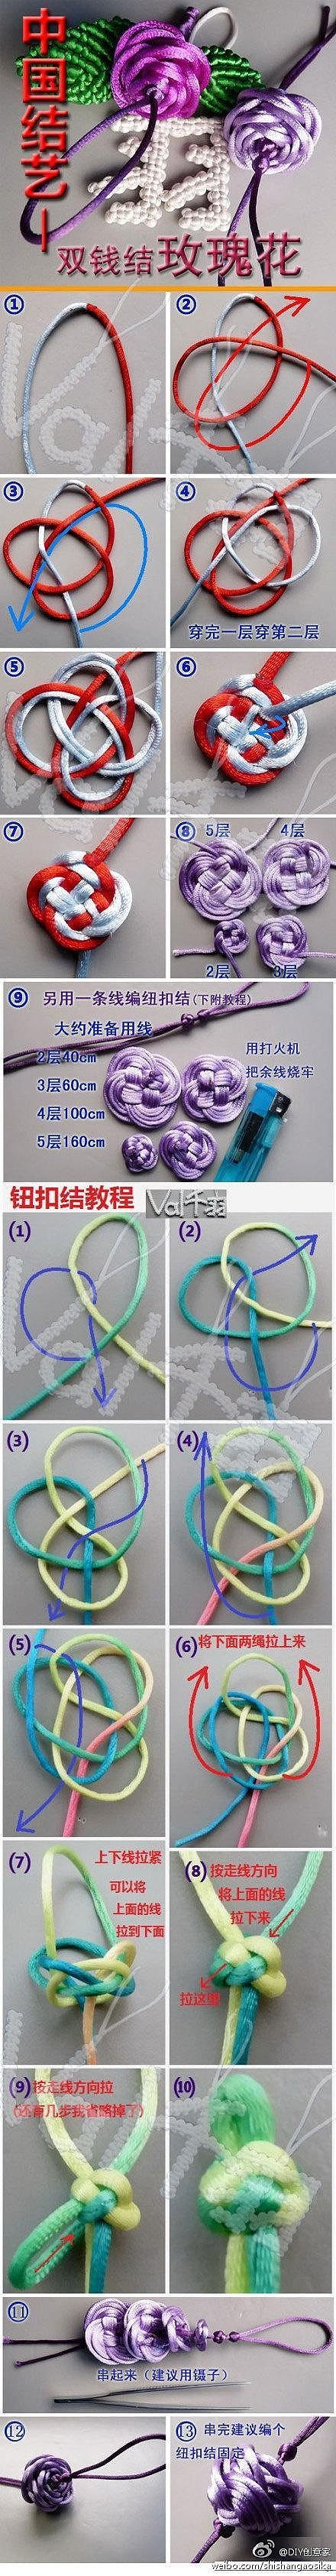 String artChine Knots, Macrame, Chinese Knot, Rose Tutorial, String Art, Flower Photos, Diy, Photos Tutorials, Crafts